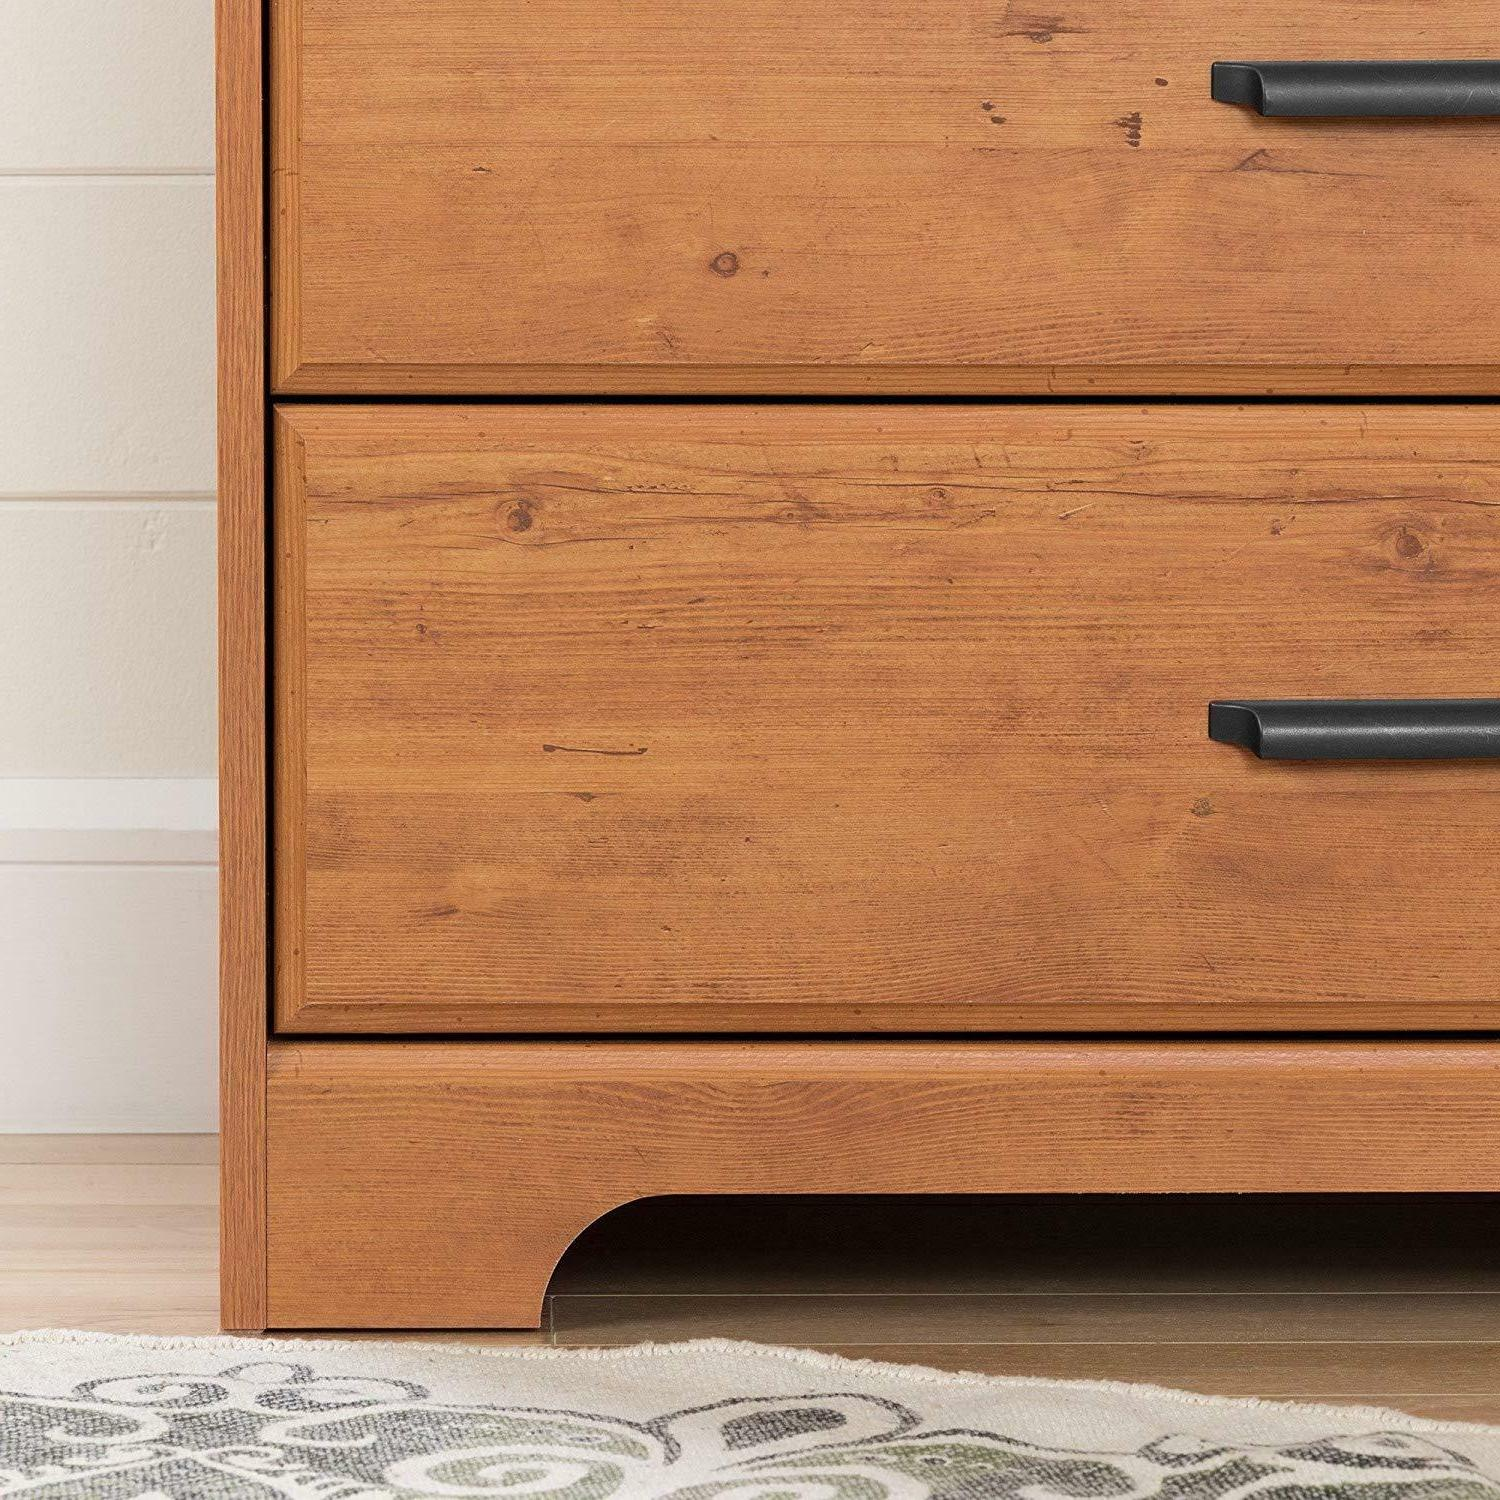 South Versa 5-Drawer Dresser, with Handles